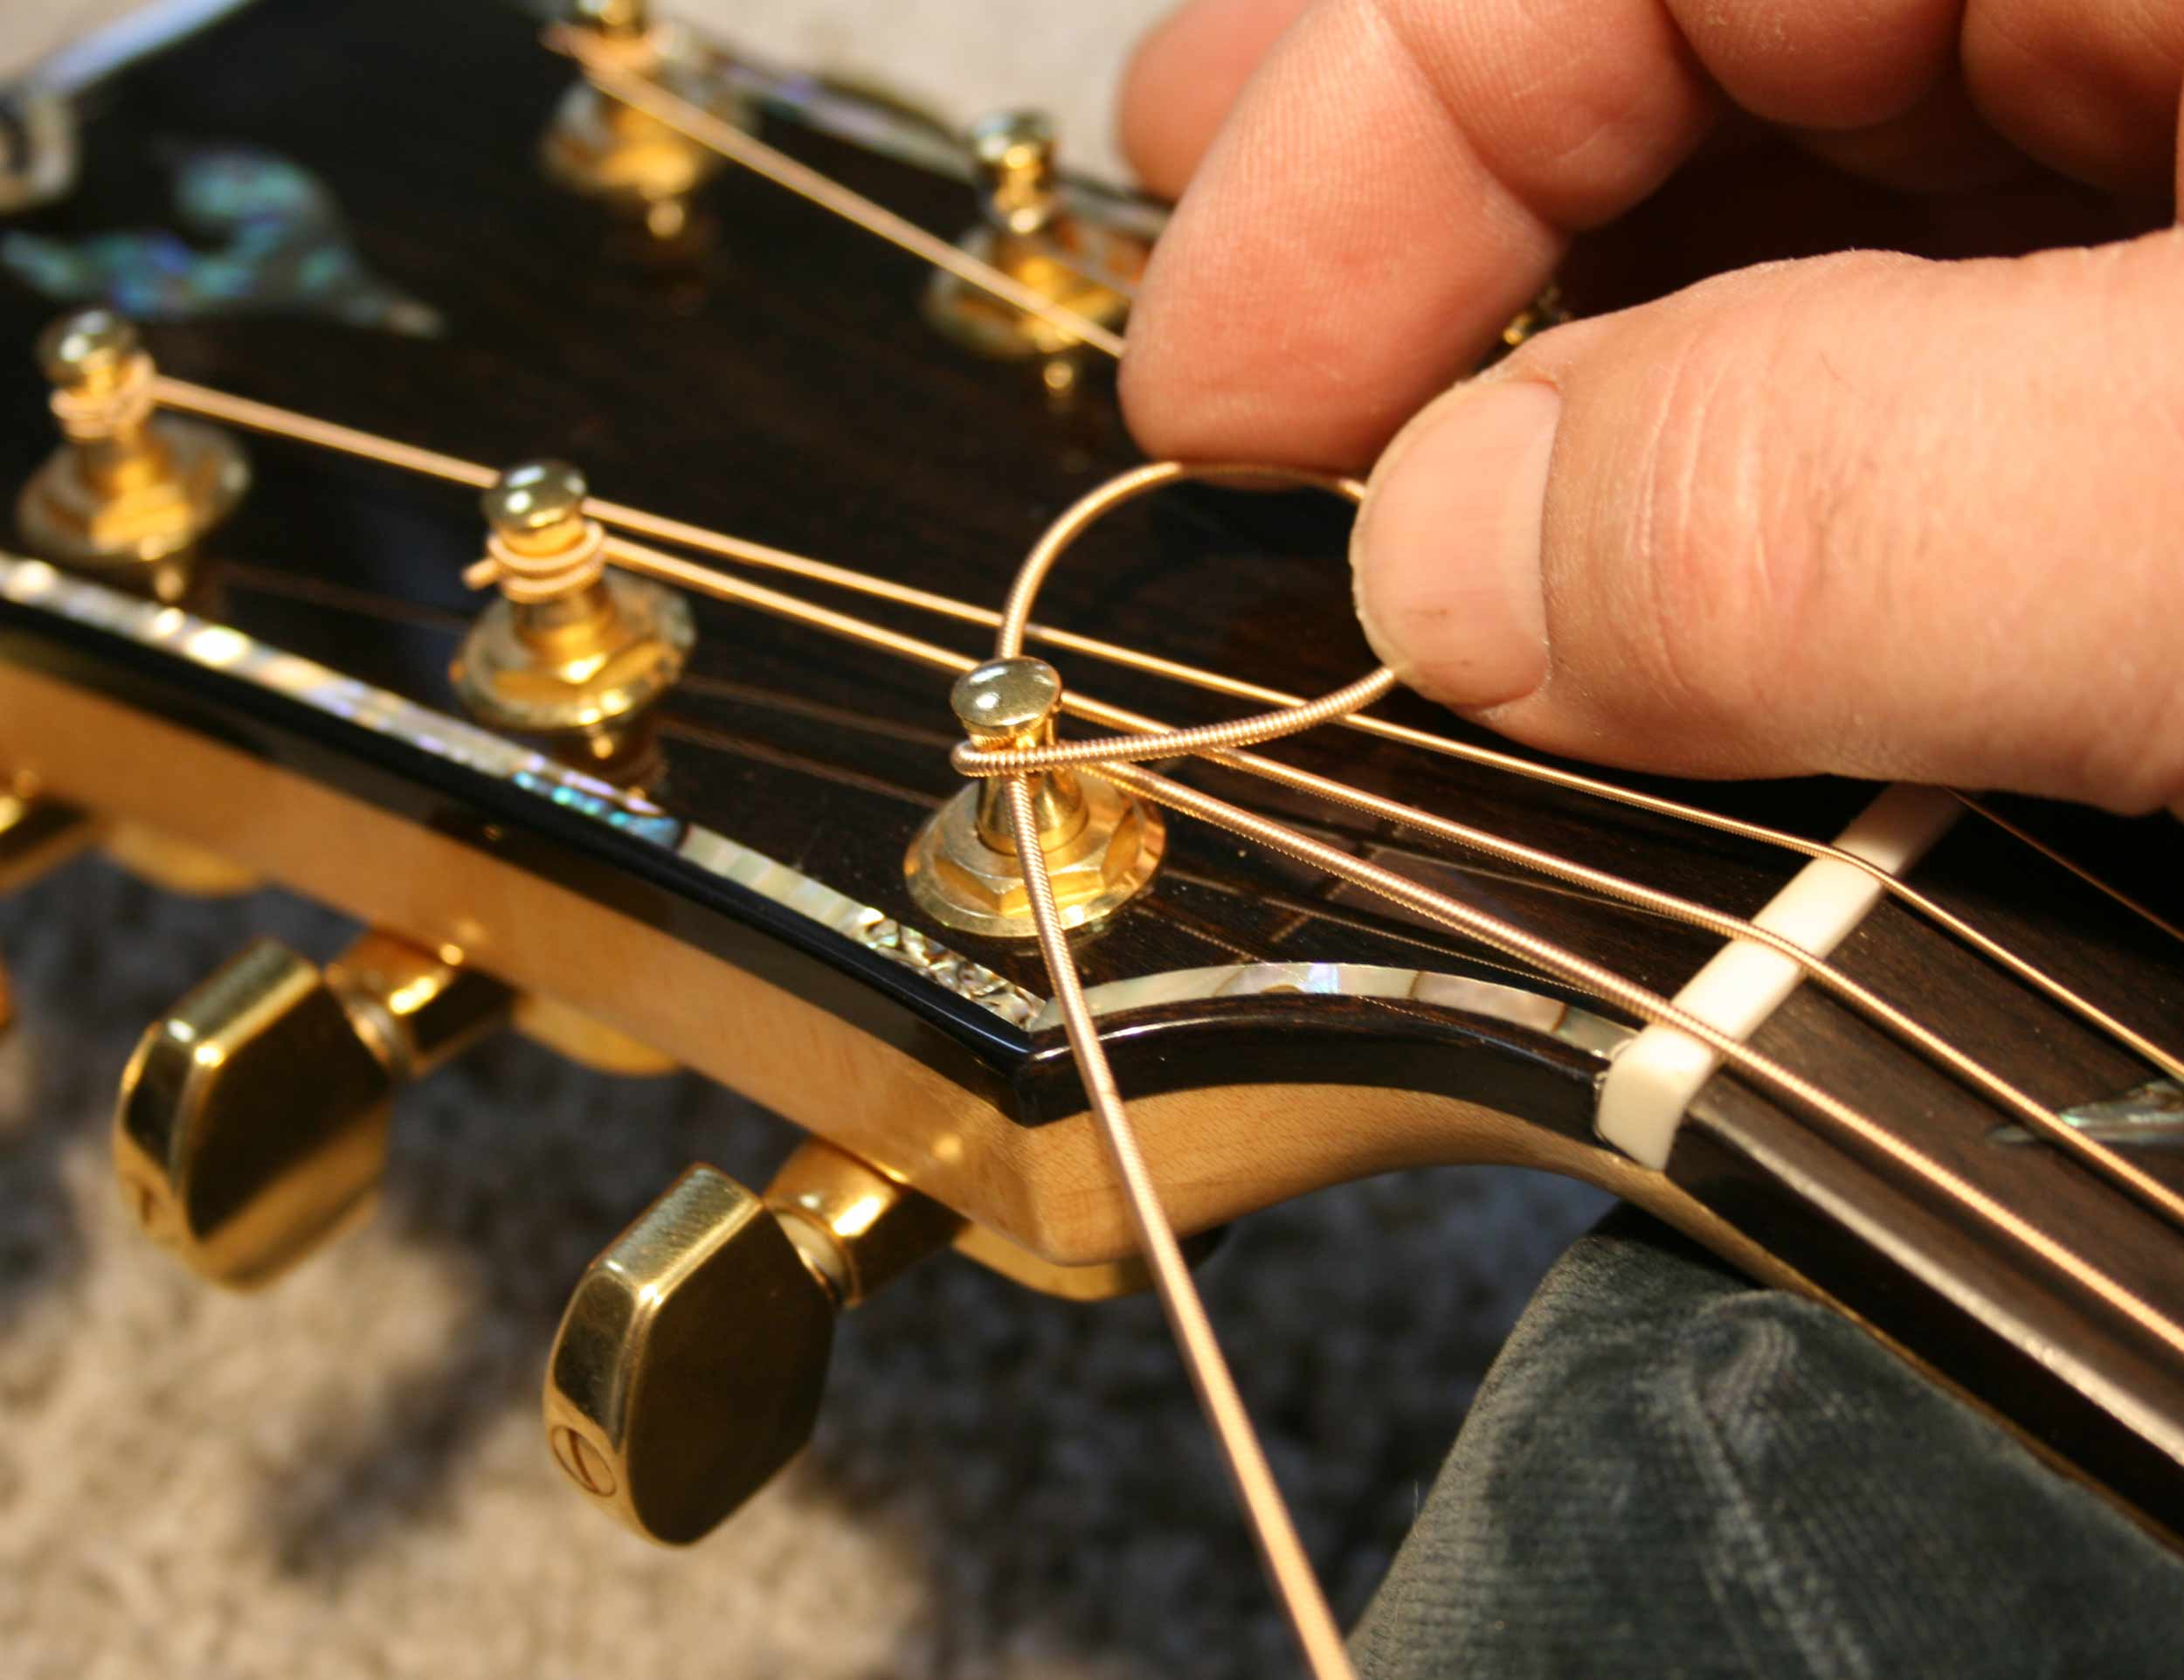 how to hold guitar strings